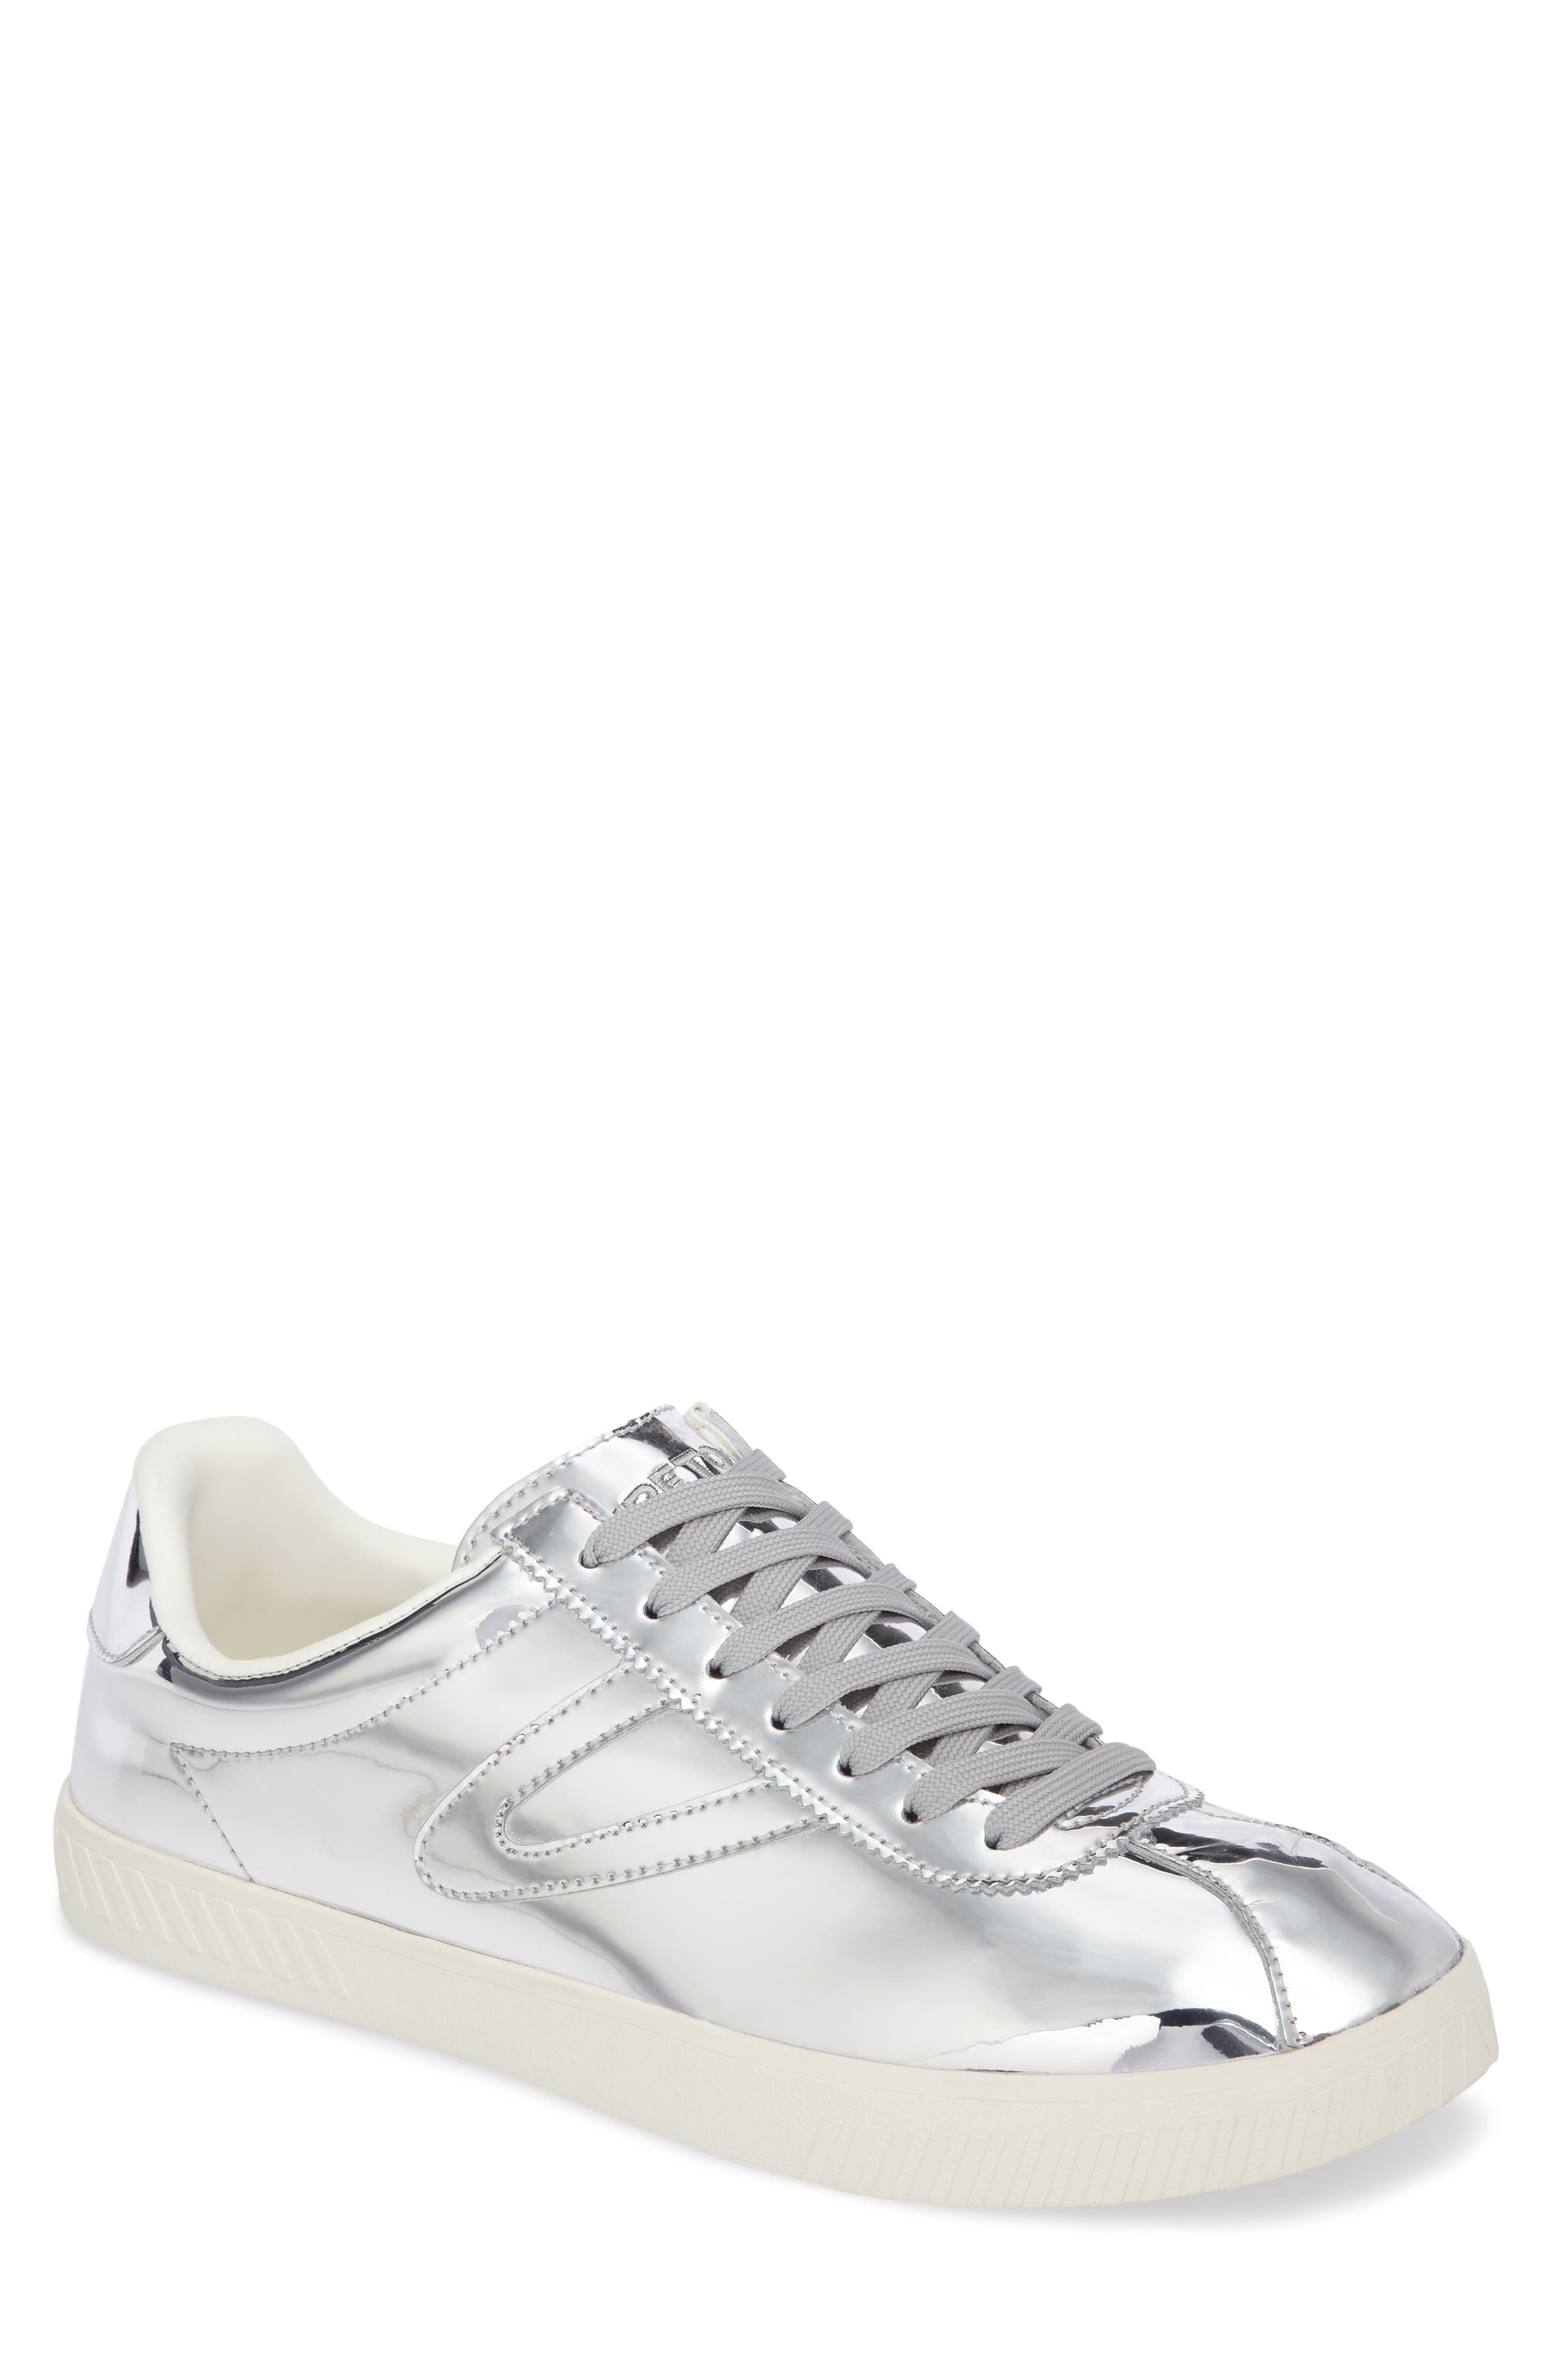 Camden 2 Sneaker,                             Main thumbnail 1, color,                             SILVER LEATHER